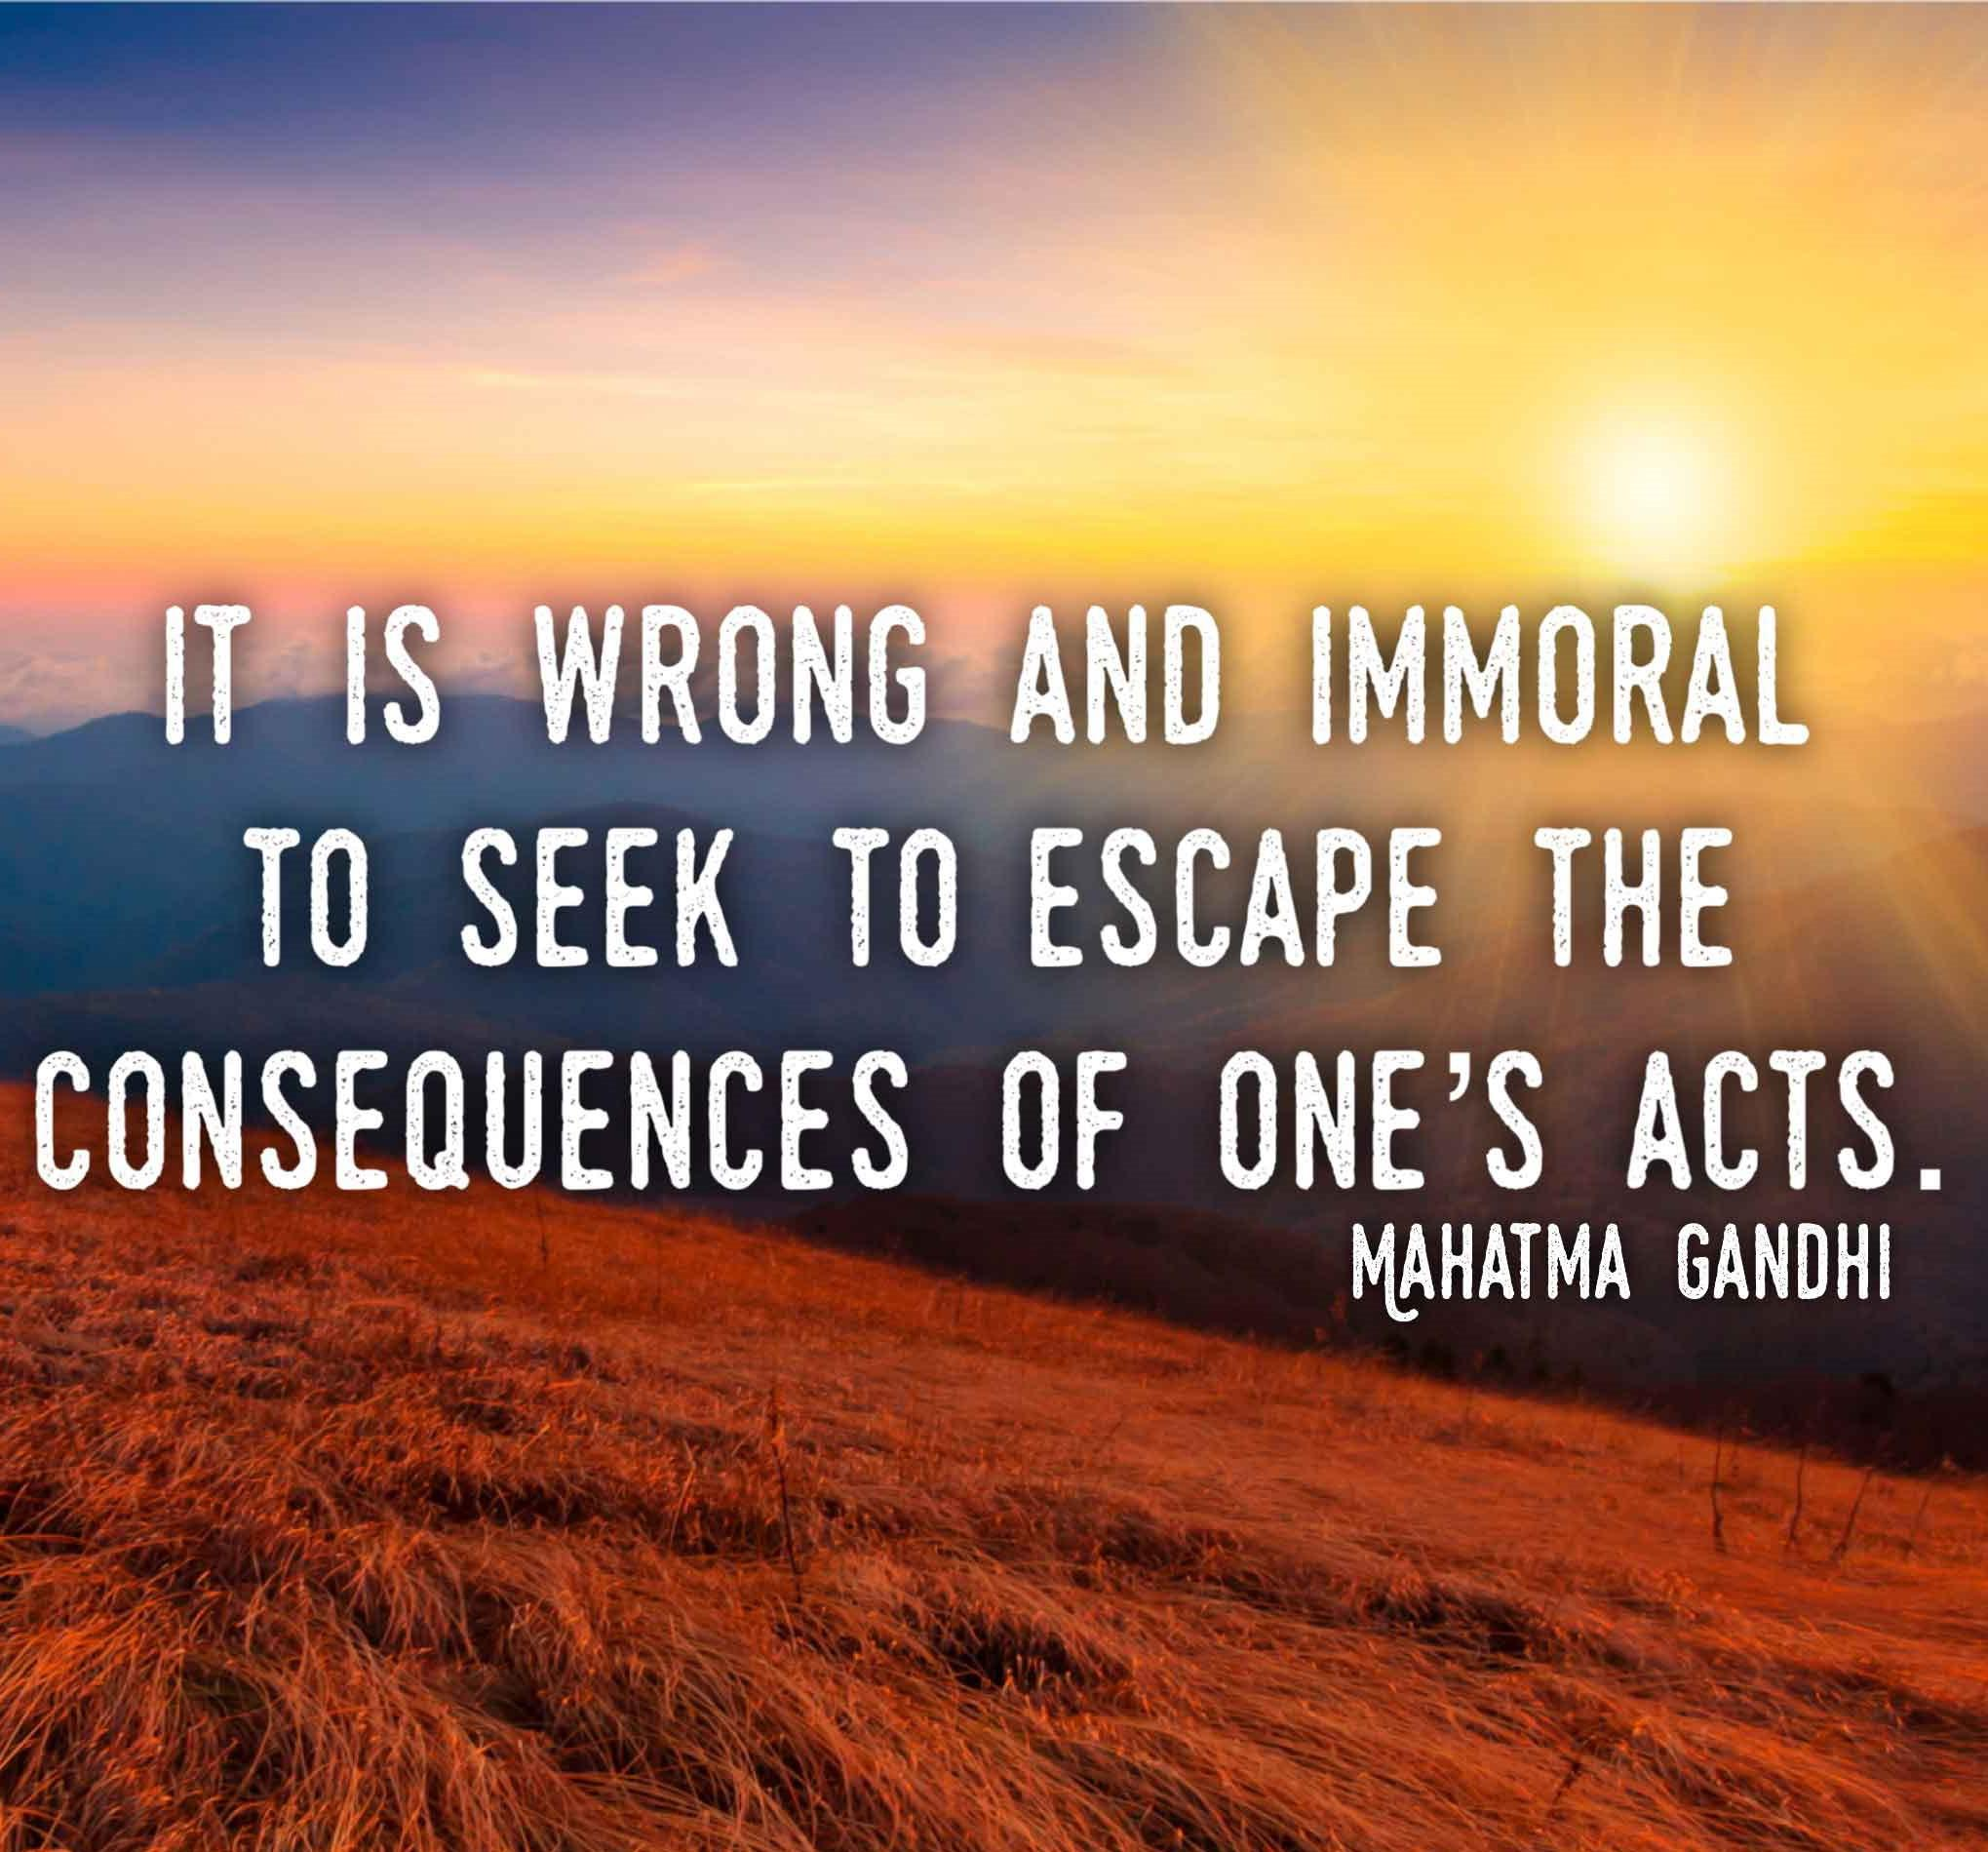 """It is wrong and immoral to seek to escape the consequences of one's acts."" -Mahatma Gandhi [2039 x 1899]"